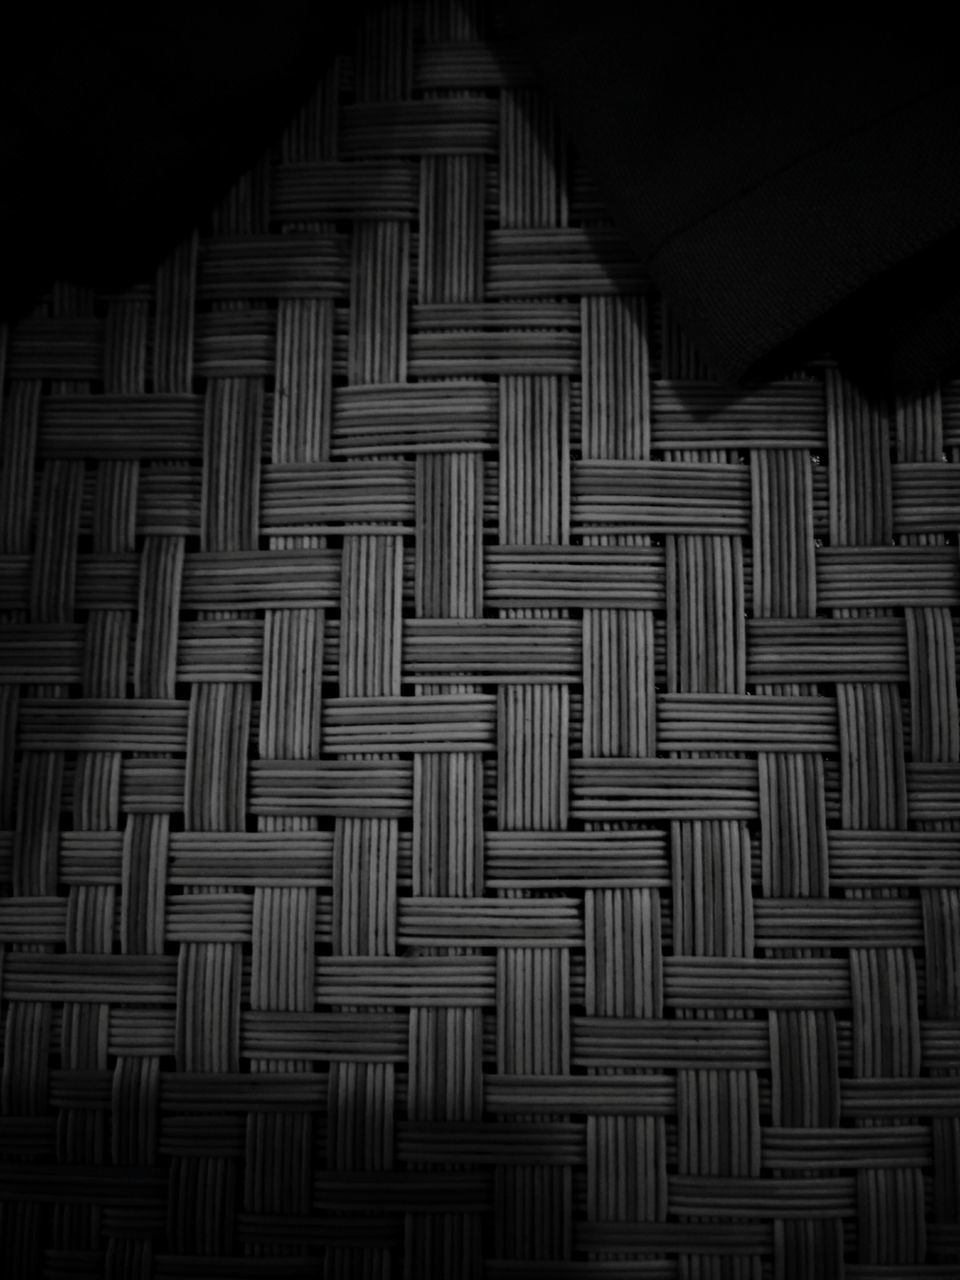 pattern, indoors, full frame, low angle view, backgrounds, night, built structure, textured, design, architecture, no people, close-up, illuminated, repetition, wall - building feature, ceiling, metal, lighting equipment, abstract